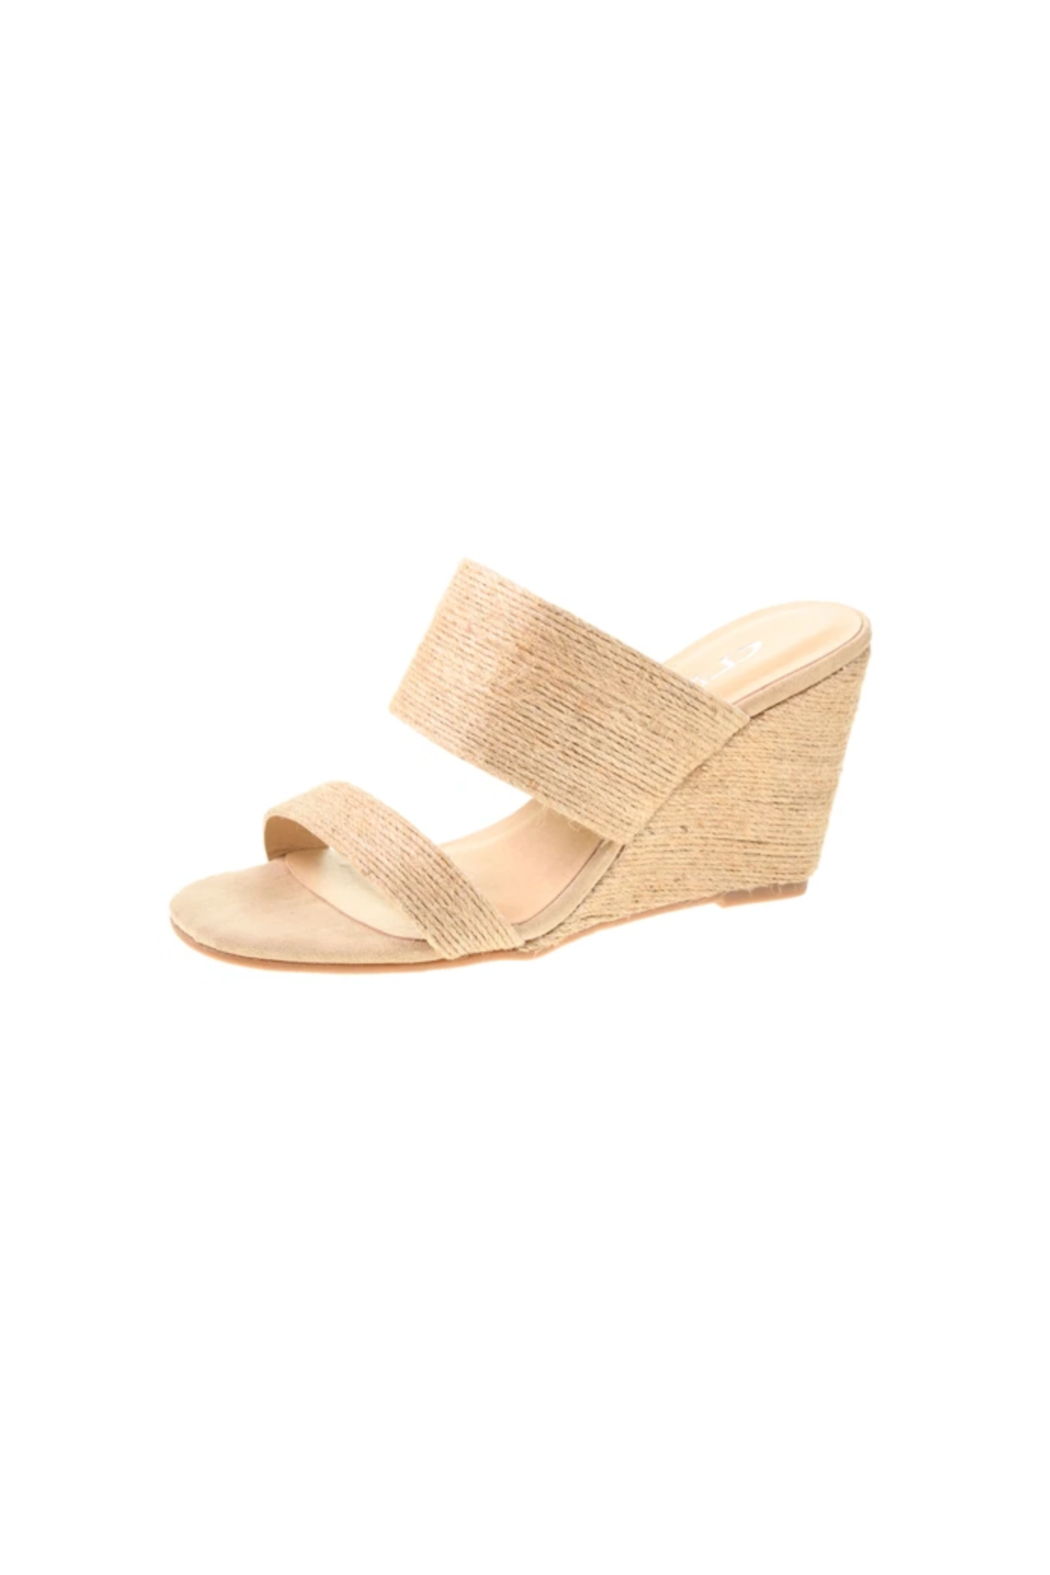 CL by Chinese Laundry Five Star Wedge - Front Cropped Image